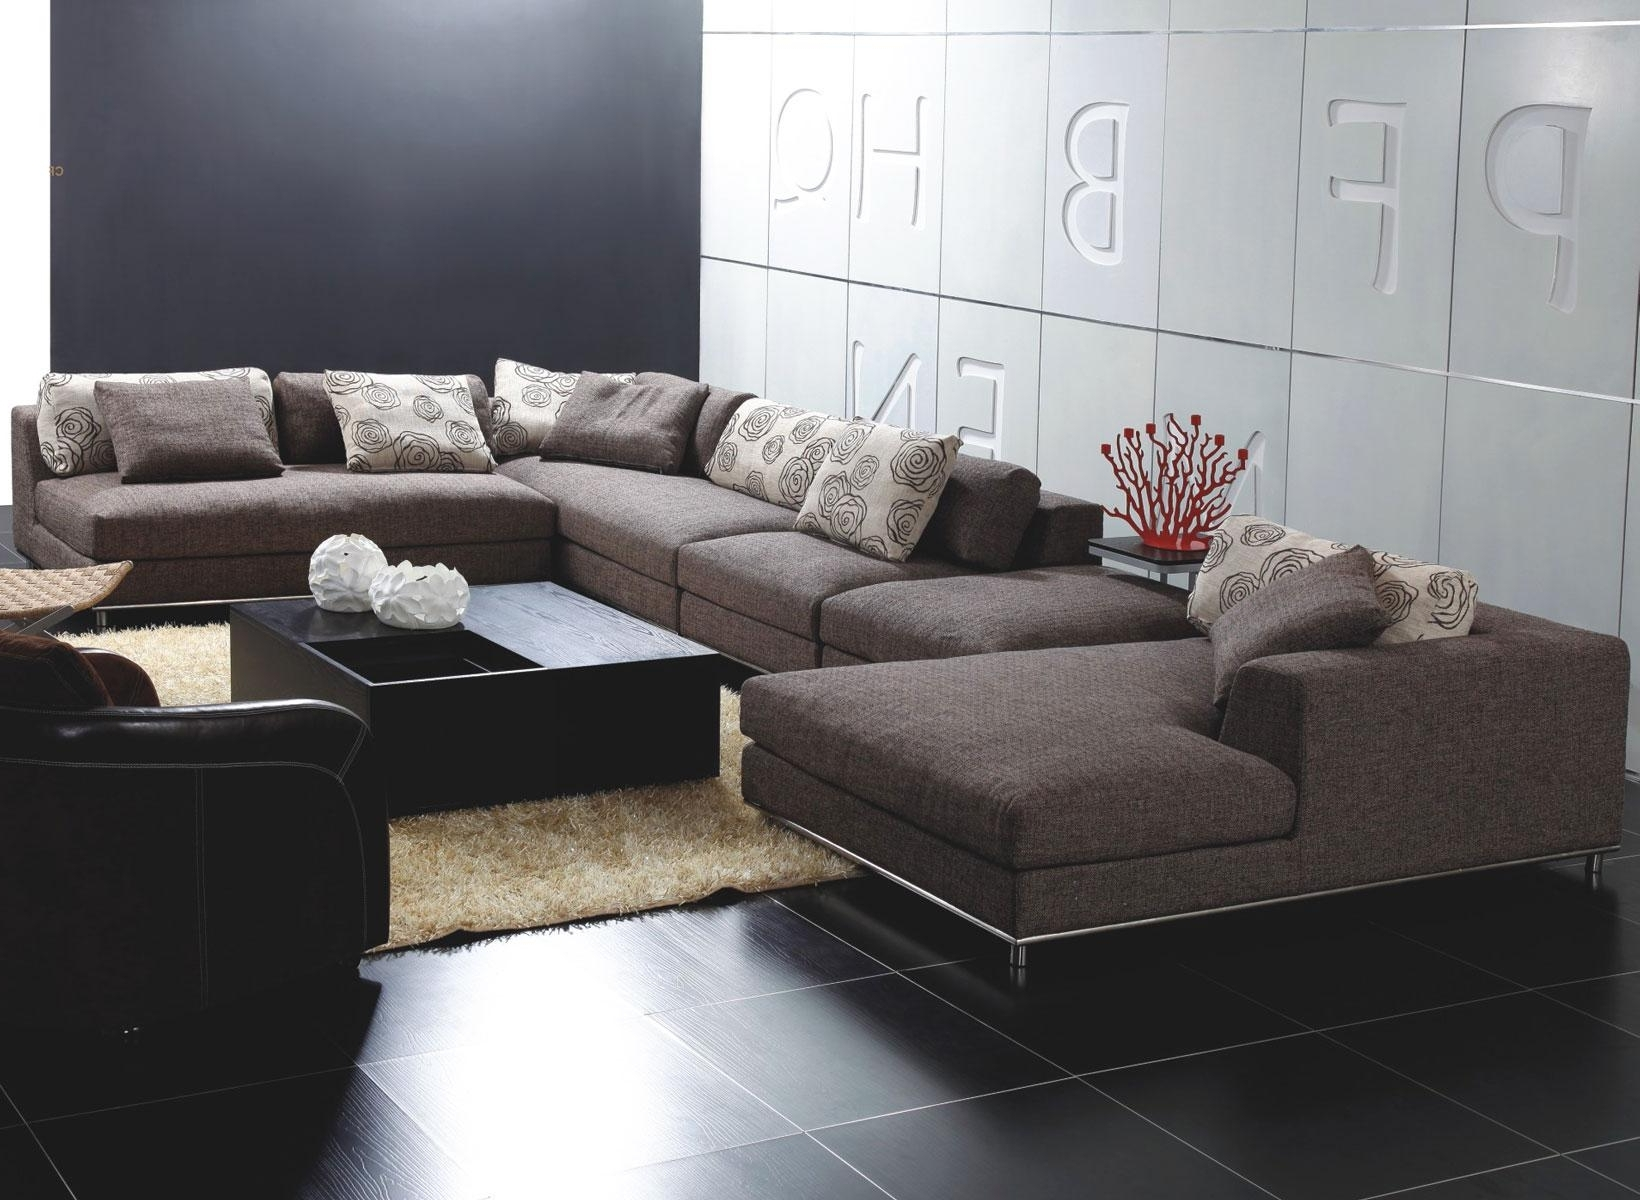 Best Designer Sectional Sofas 56 Contemporary Sofa Inspiration Throughout Recent Contemporary Sectional Sofas (View 1 of 15)